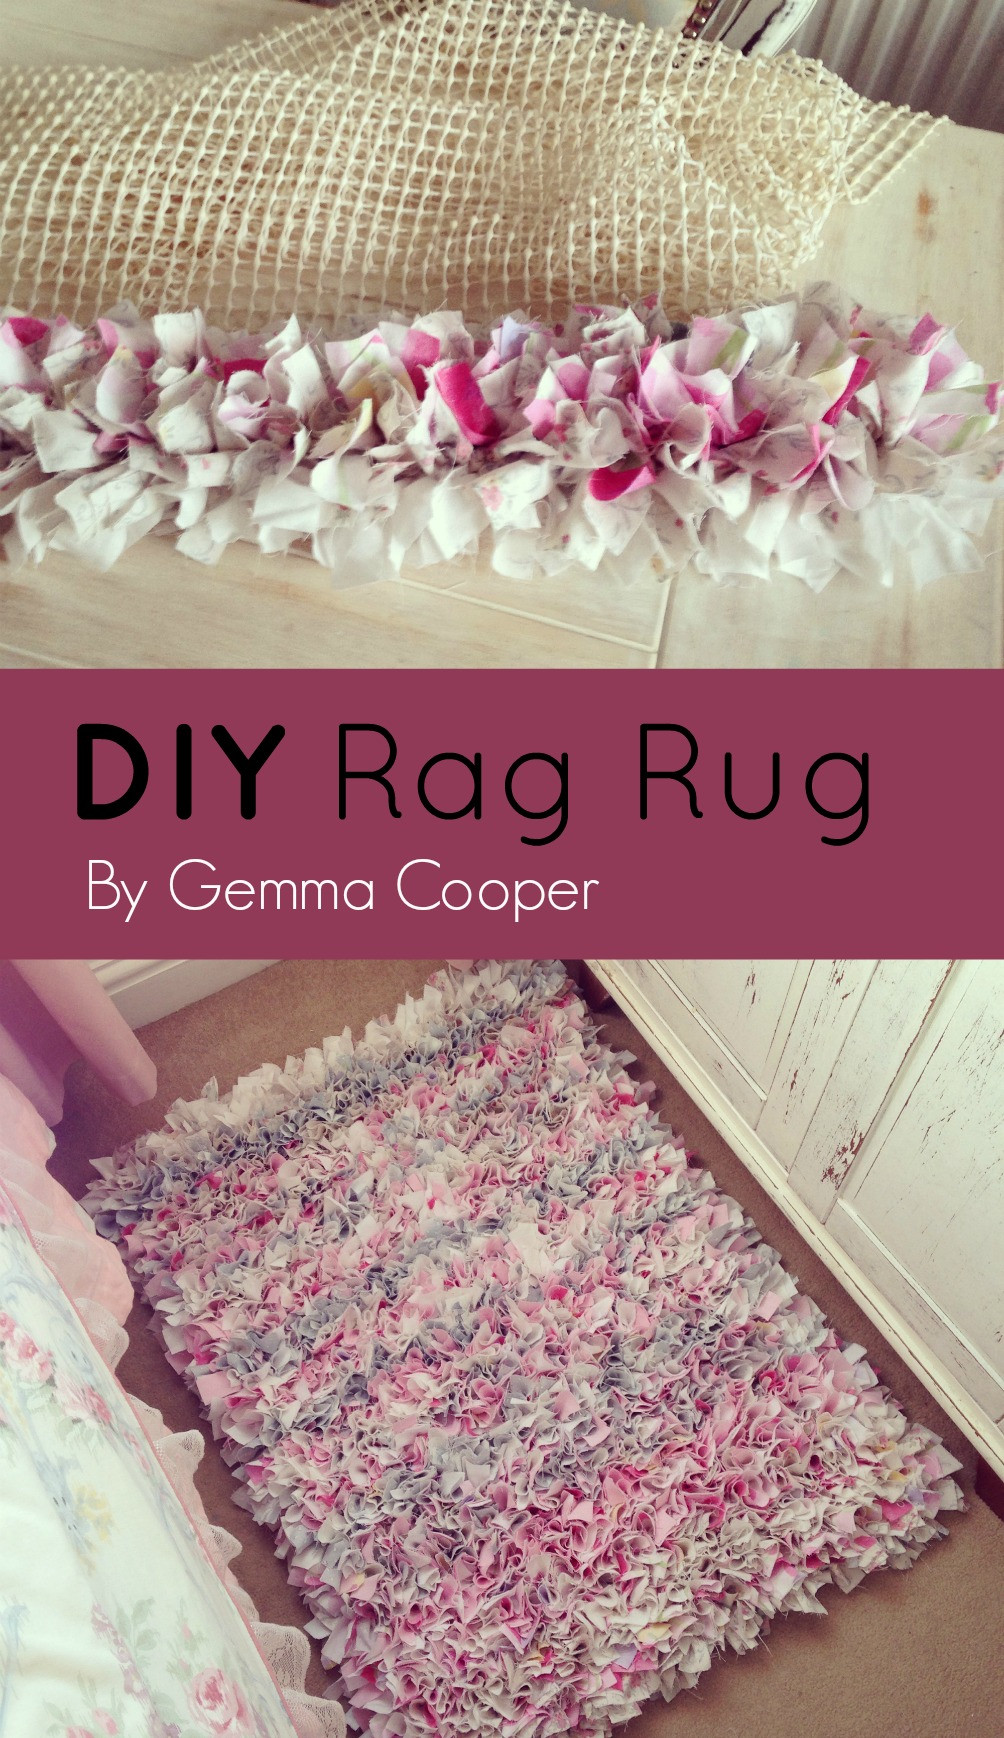 Best ideas about Rag Rug DIY . Save or Pin DIY RAG RUG Now.